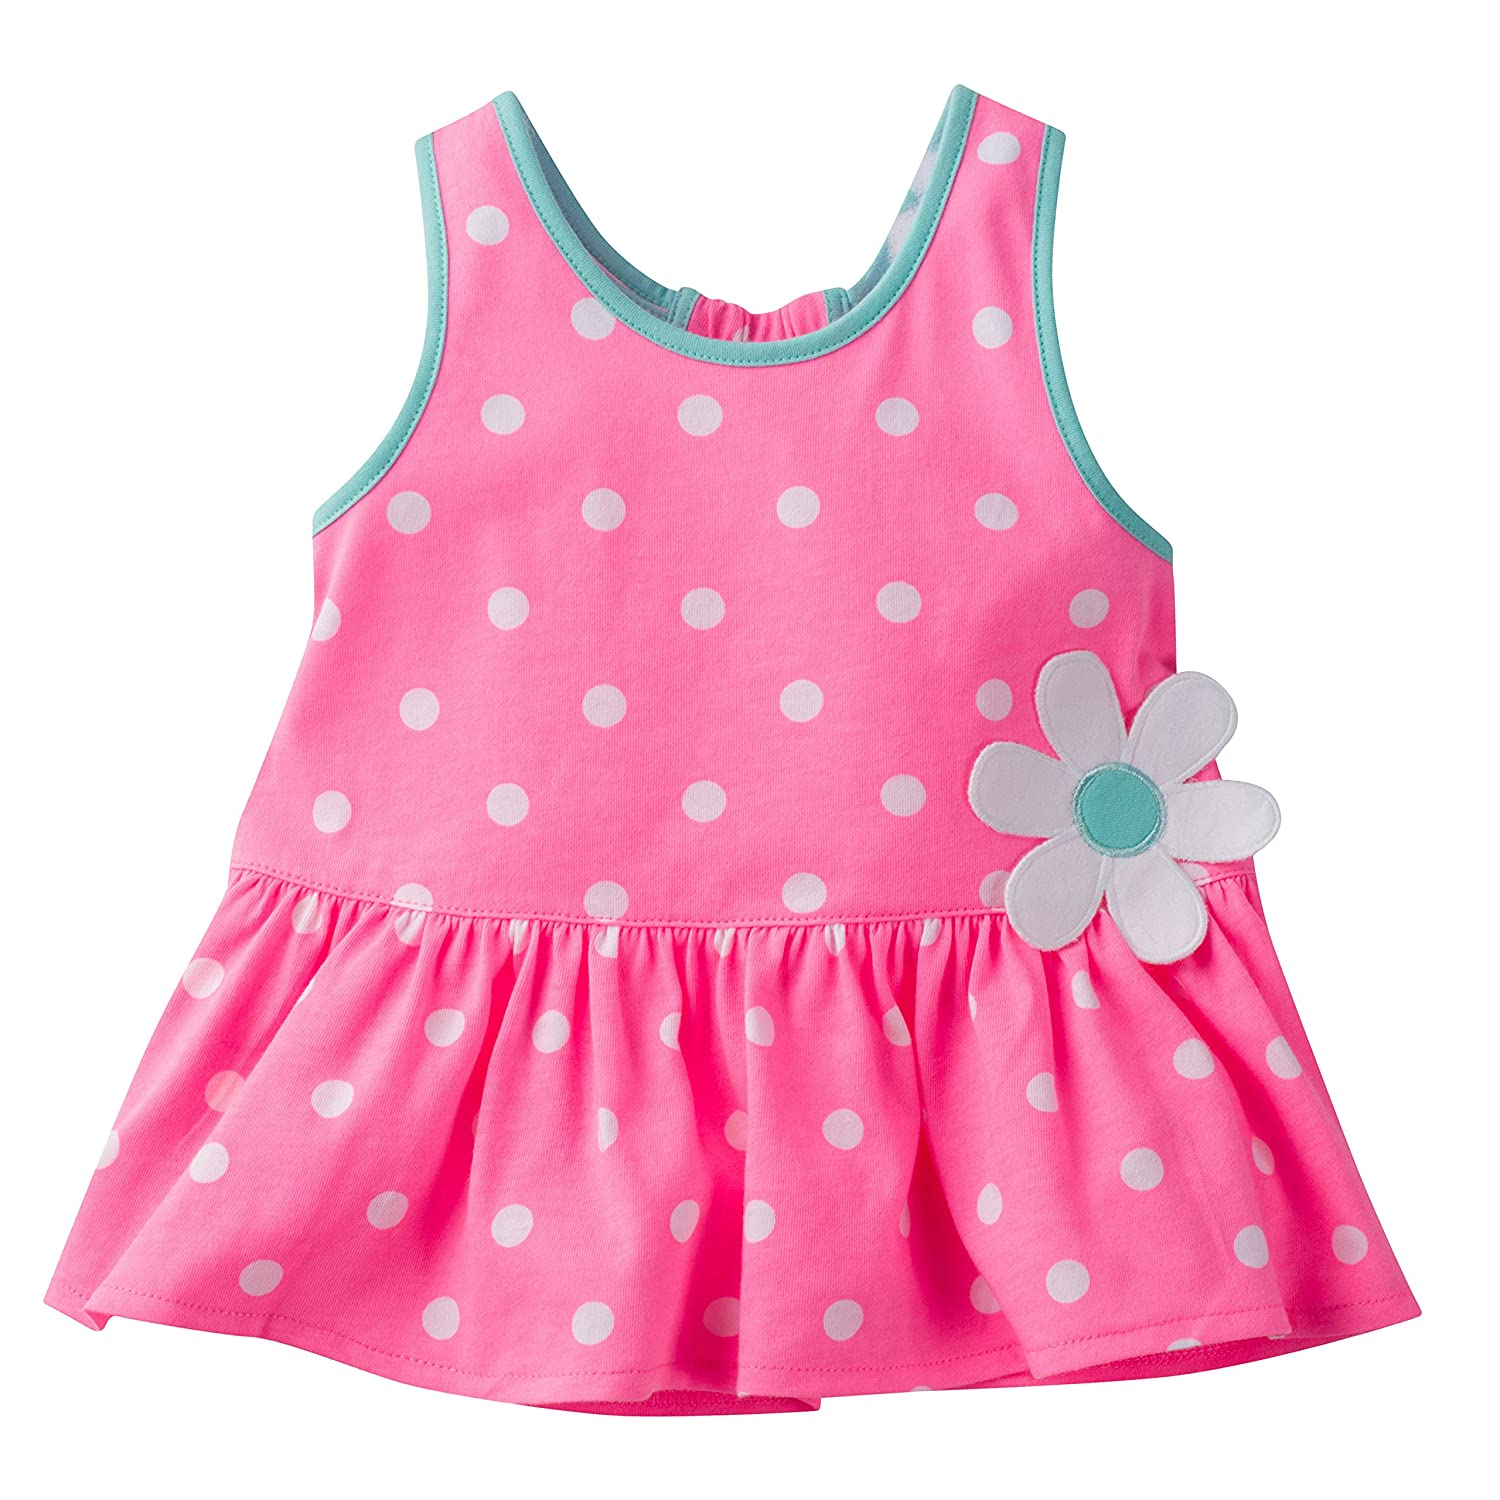 Gerber Graduates Baby Girls' Sleeveless Tunic Top 96072116A